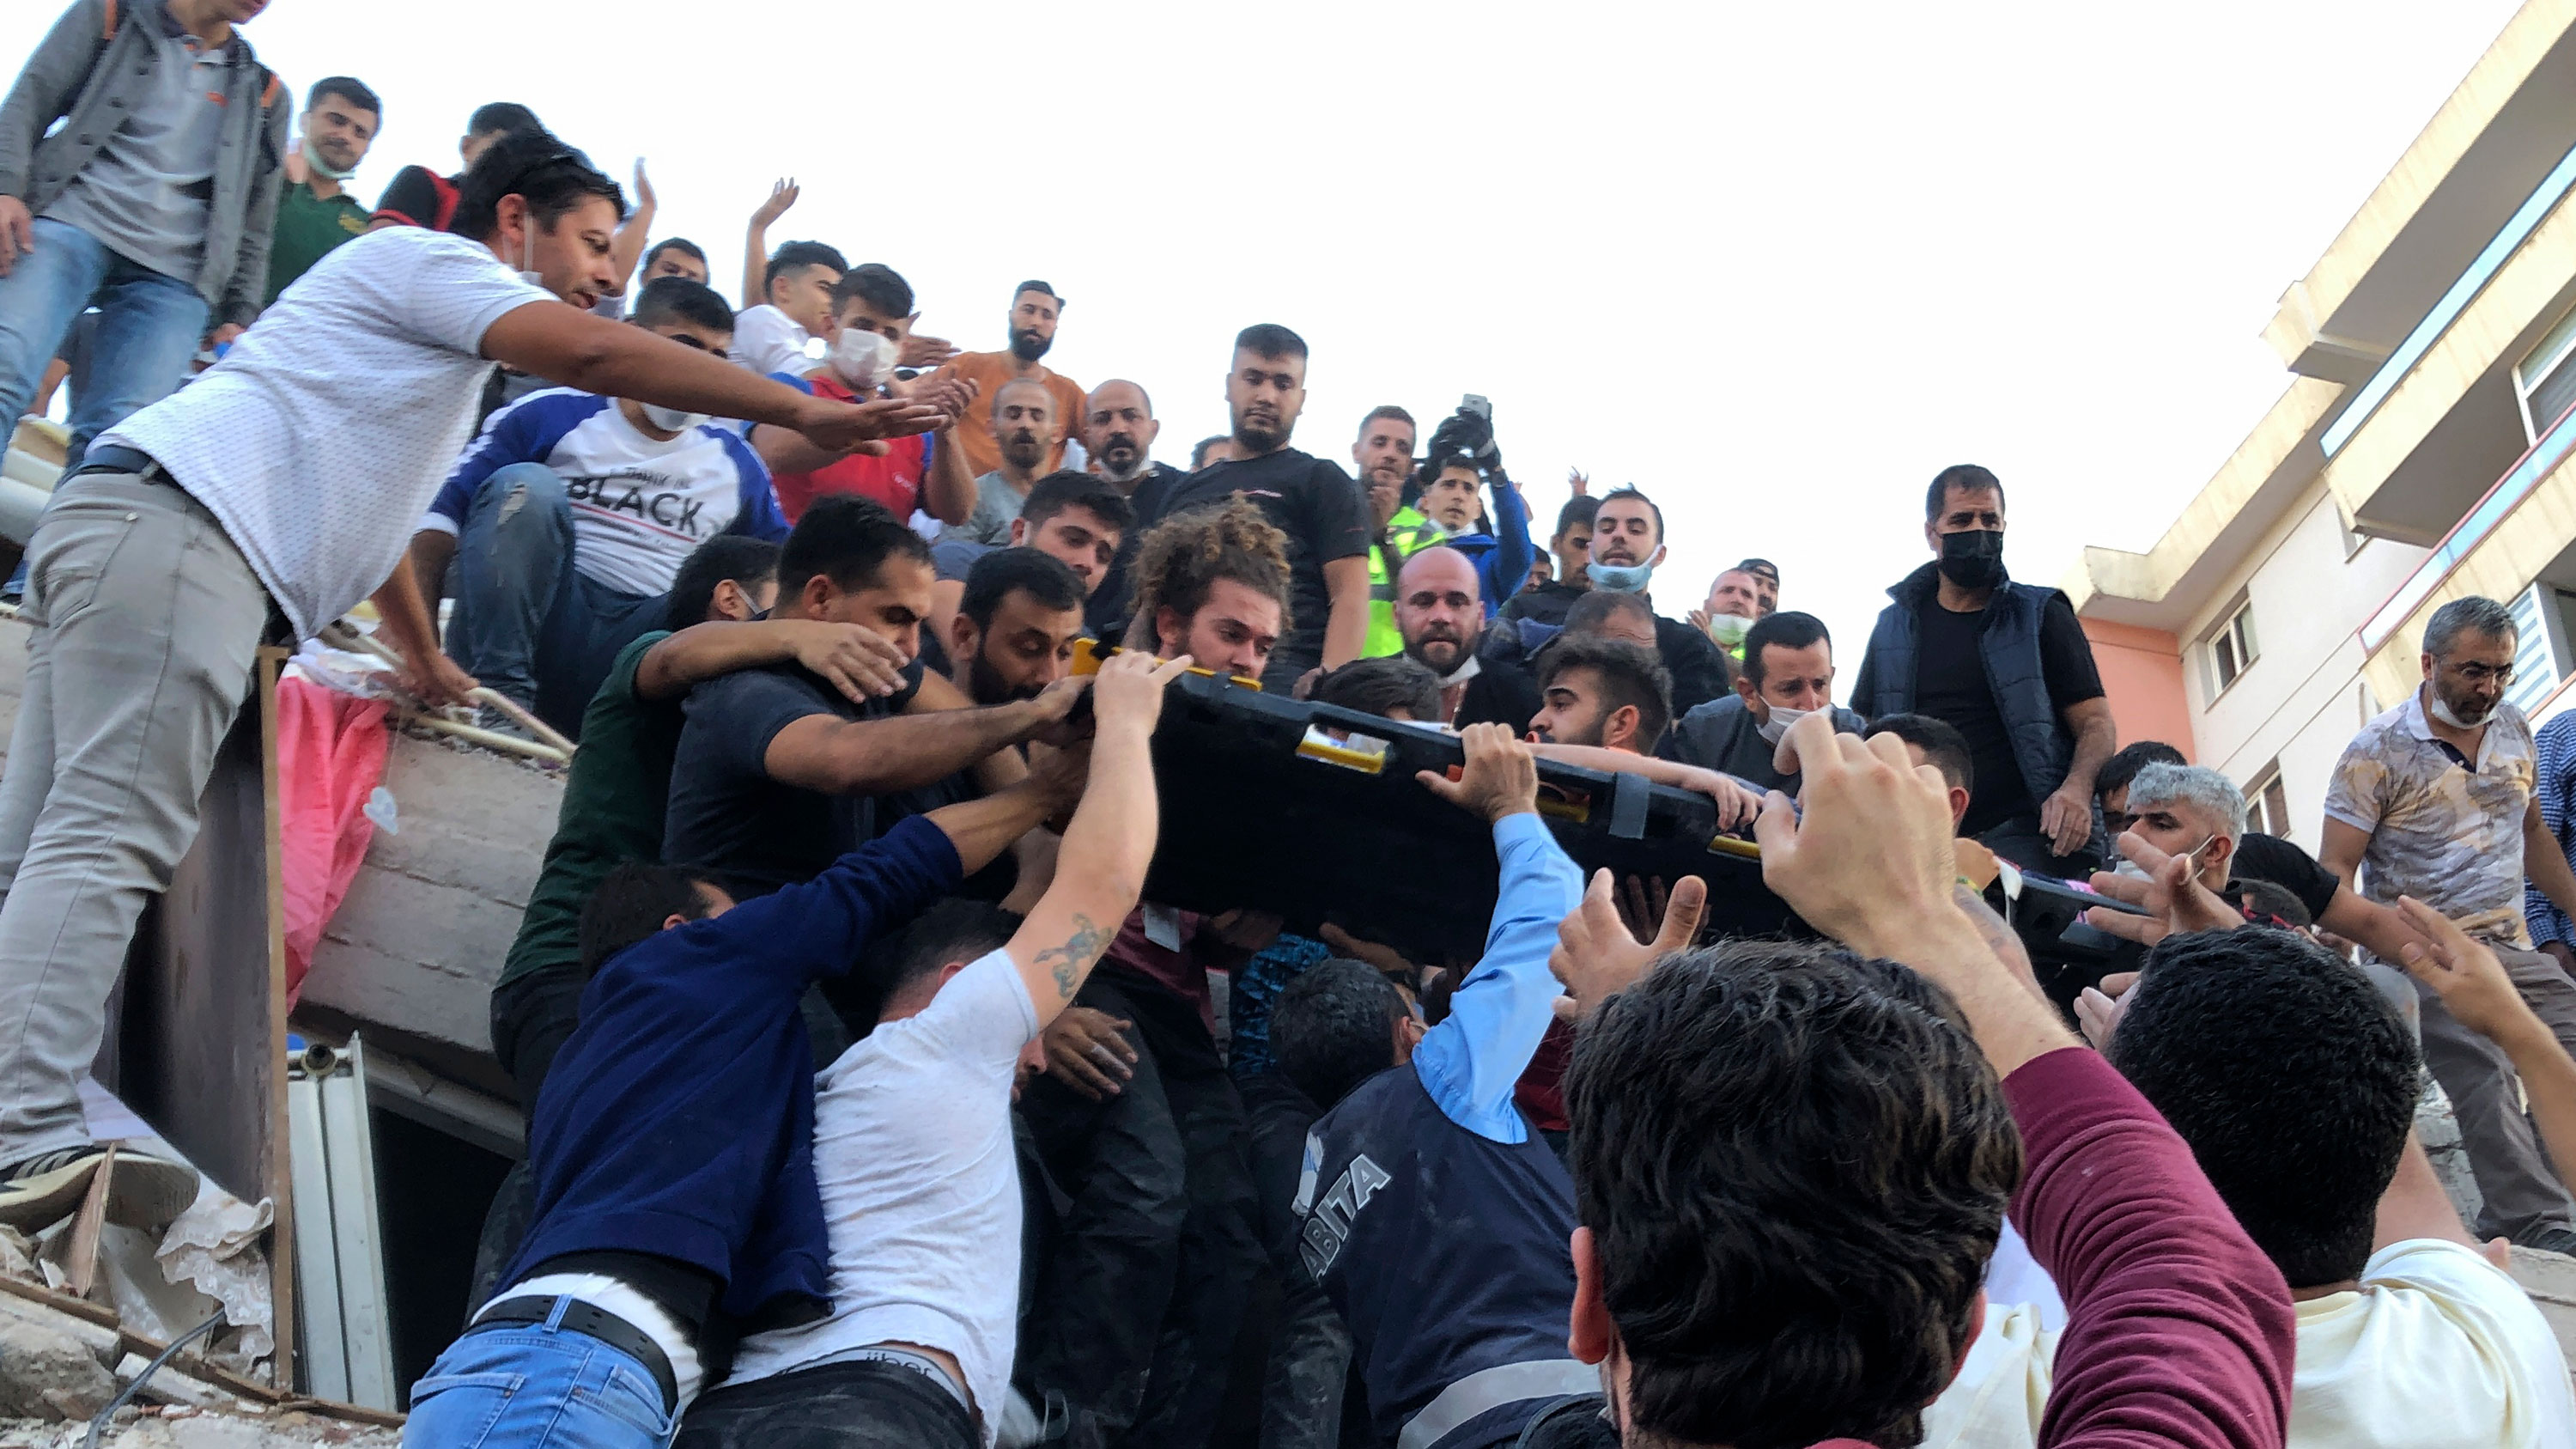 People carry a wounded person from the debris of a collapsed building in Izmir, Turkey, on October 30.